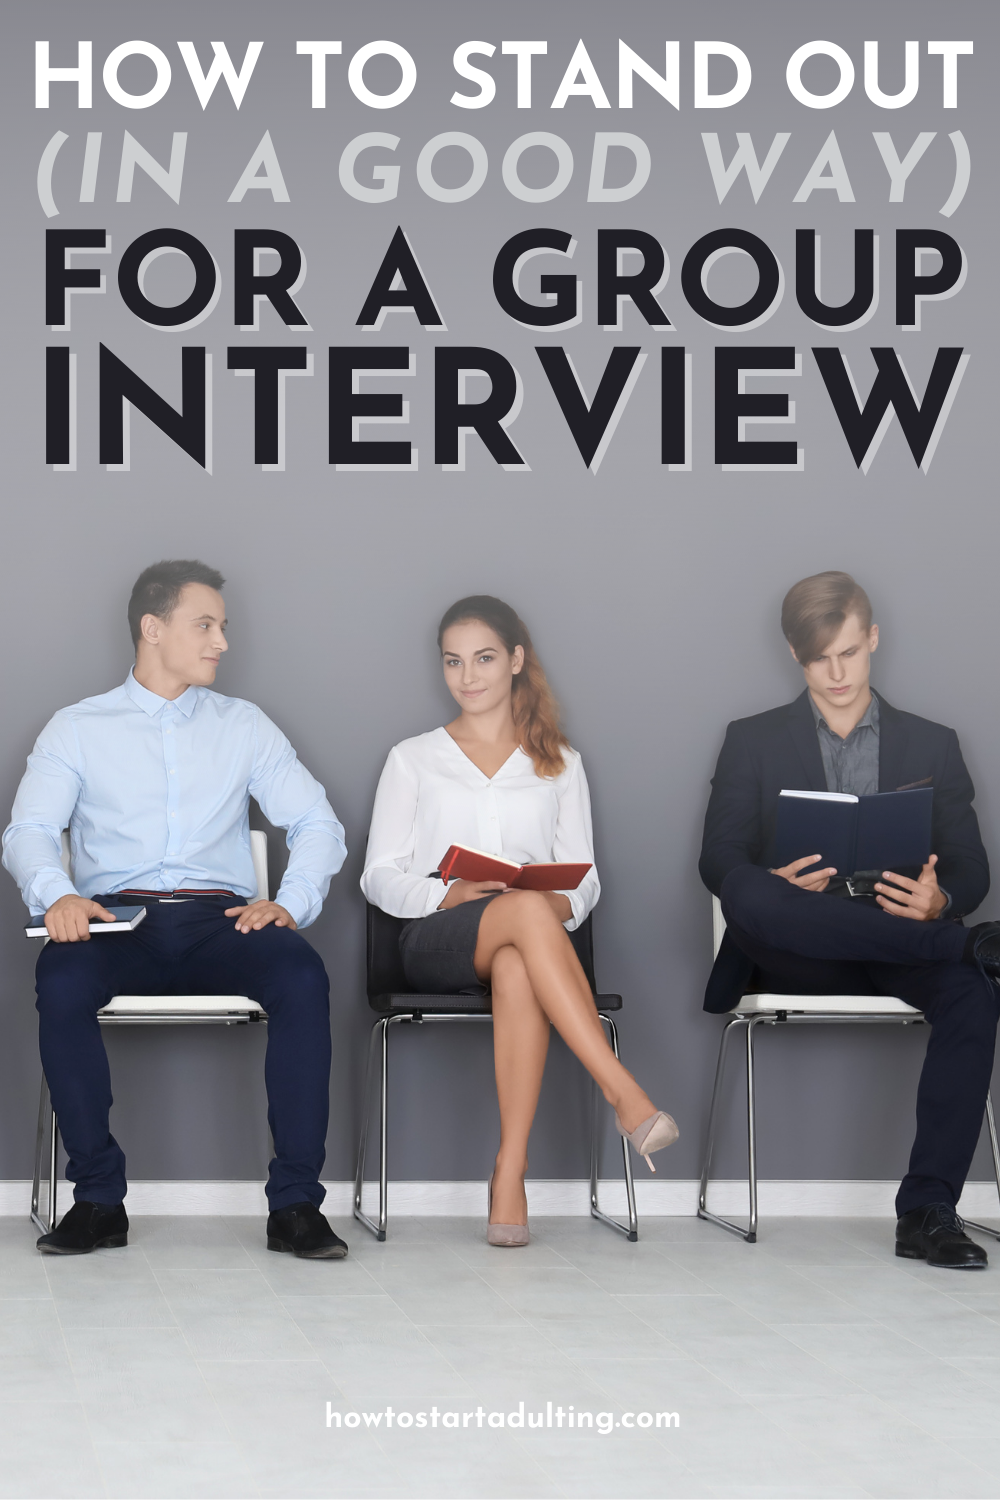 How to Stand Out (In A Good Way) For A Group Interview